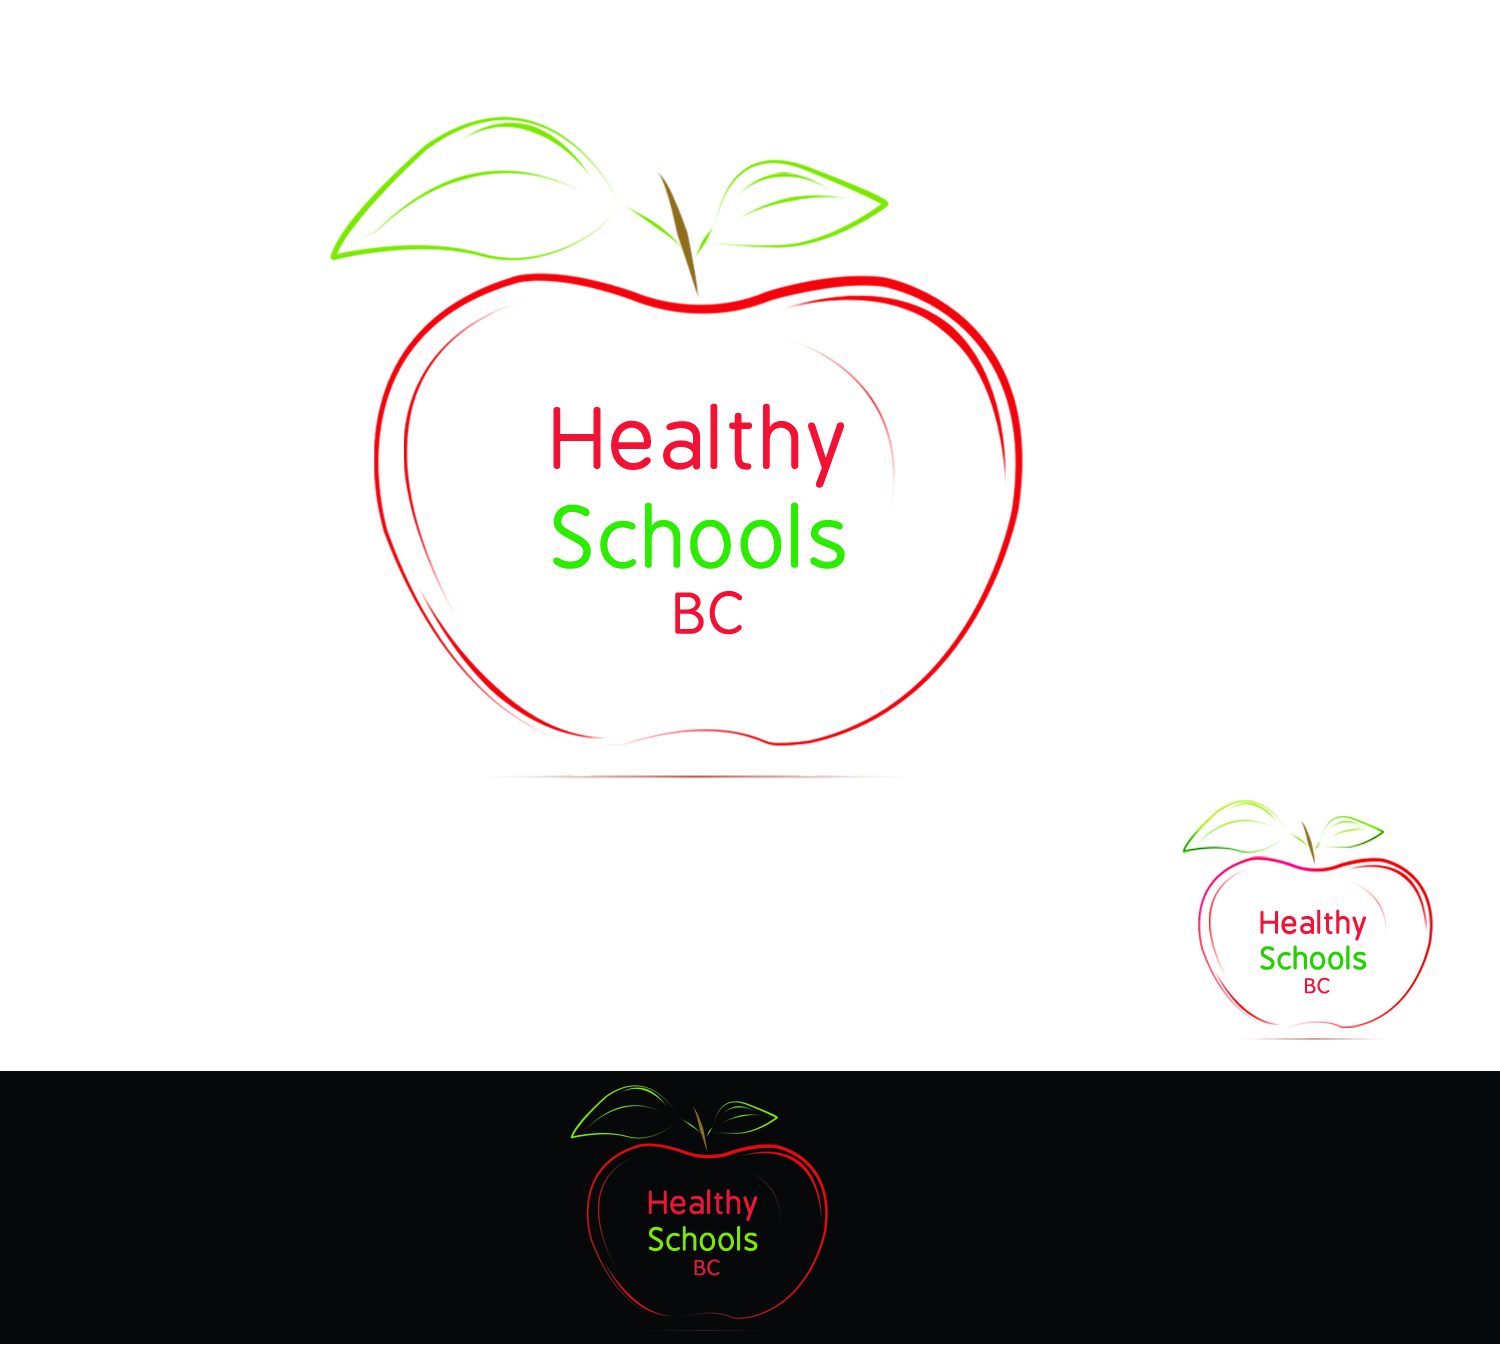 Logo Design by Uroob Rubbani - Entry No. 222 in the Logo Design Contest SImple, Creative and Clean Logo Design for Healthy Schools British Columbia, Canada.